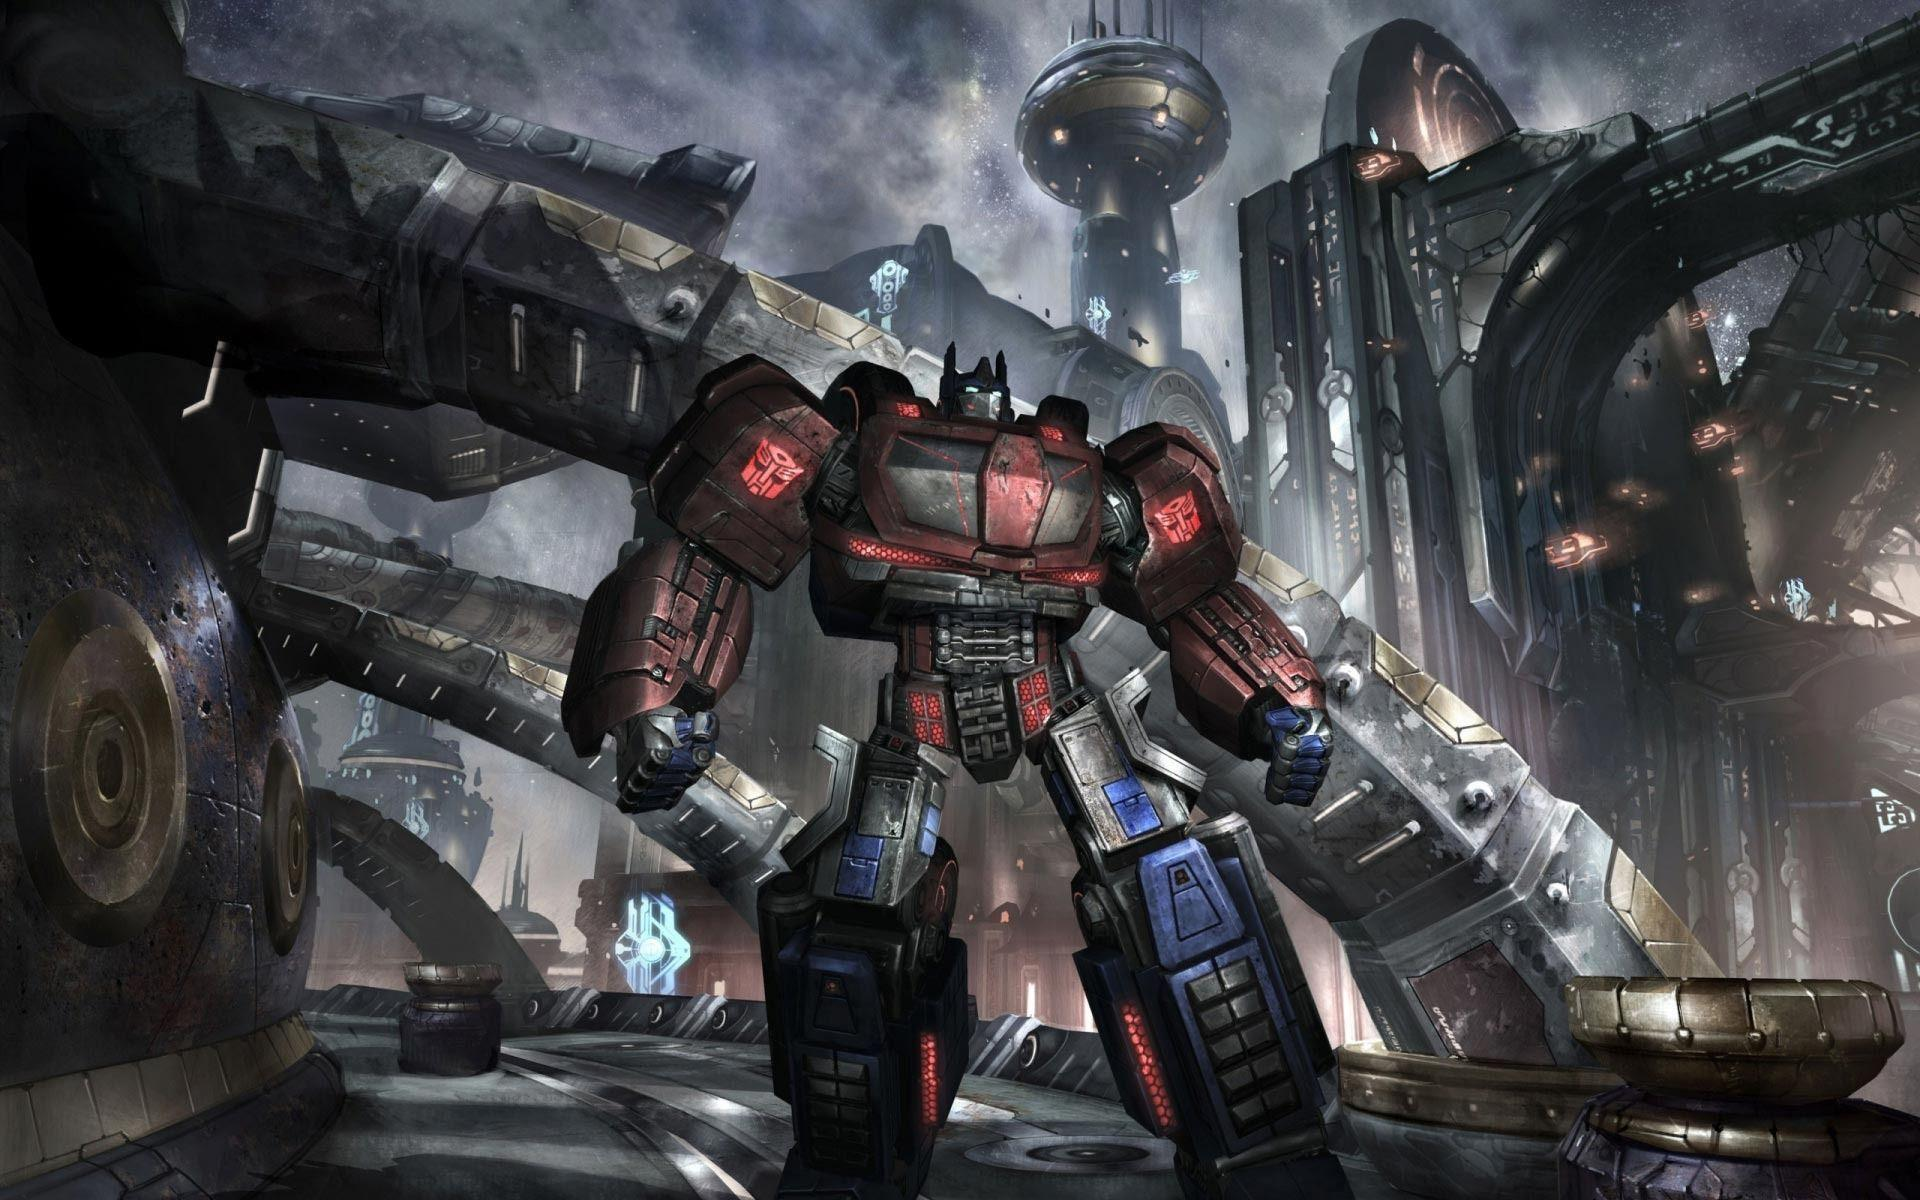 Transformers Fall Of Cybertron Wallpaper 1920x1080 Transformers Cybertron Wallpapers Wallpaper Cave